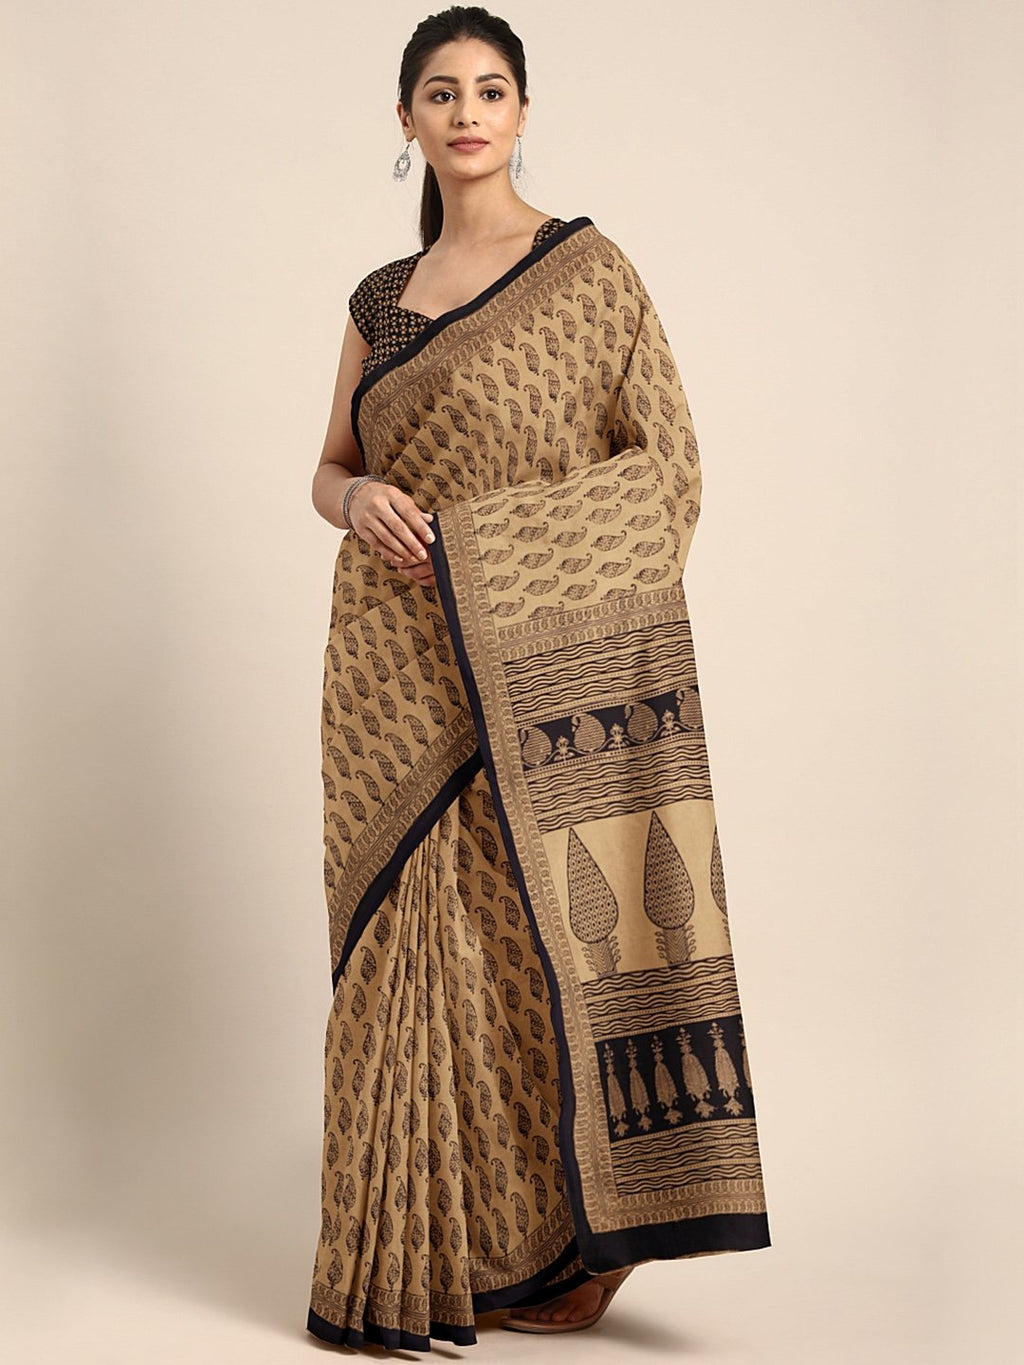 Brown Black Handblock Print Saree-Saree-Kalakari India-MYBASA0023-Bagh, Cotton, Geographical Indication, Hand Blocks, Hand Crafted, Heritage Prints, Natural Dyes, Sarees, Sustainable Fabrics-[Linen,Ethnic,wear,Fashionista,Handloom,Handicraft,Indigo,blockprint,block,print,Cotton,Chanderi,Blue, latest,classy,party,bollywood,trendy,summer,style,traditional,formal,elegant,unique,style,hand,block,print, dabu,booti,gift,present,glamorous,affordable,collectible,Sari,Saree,printed, holi, Diwali, birthda